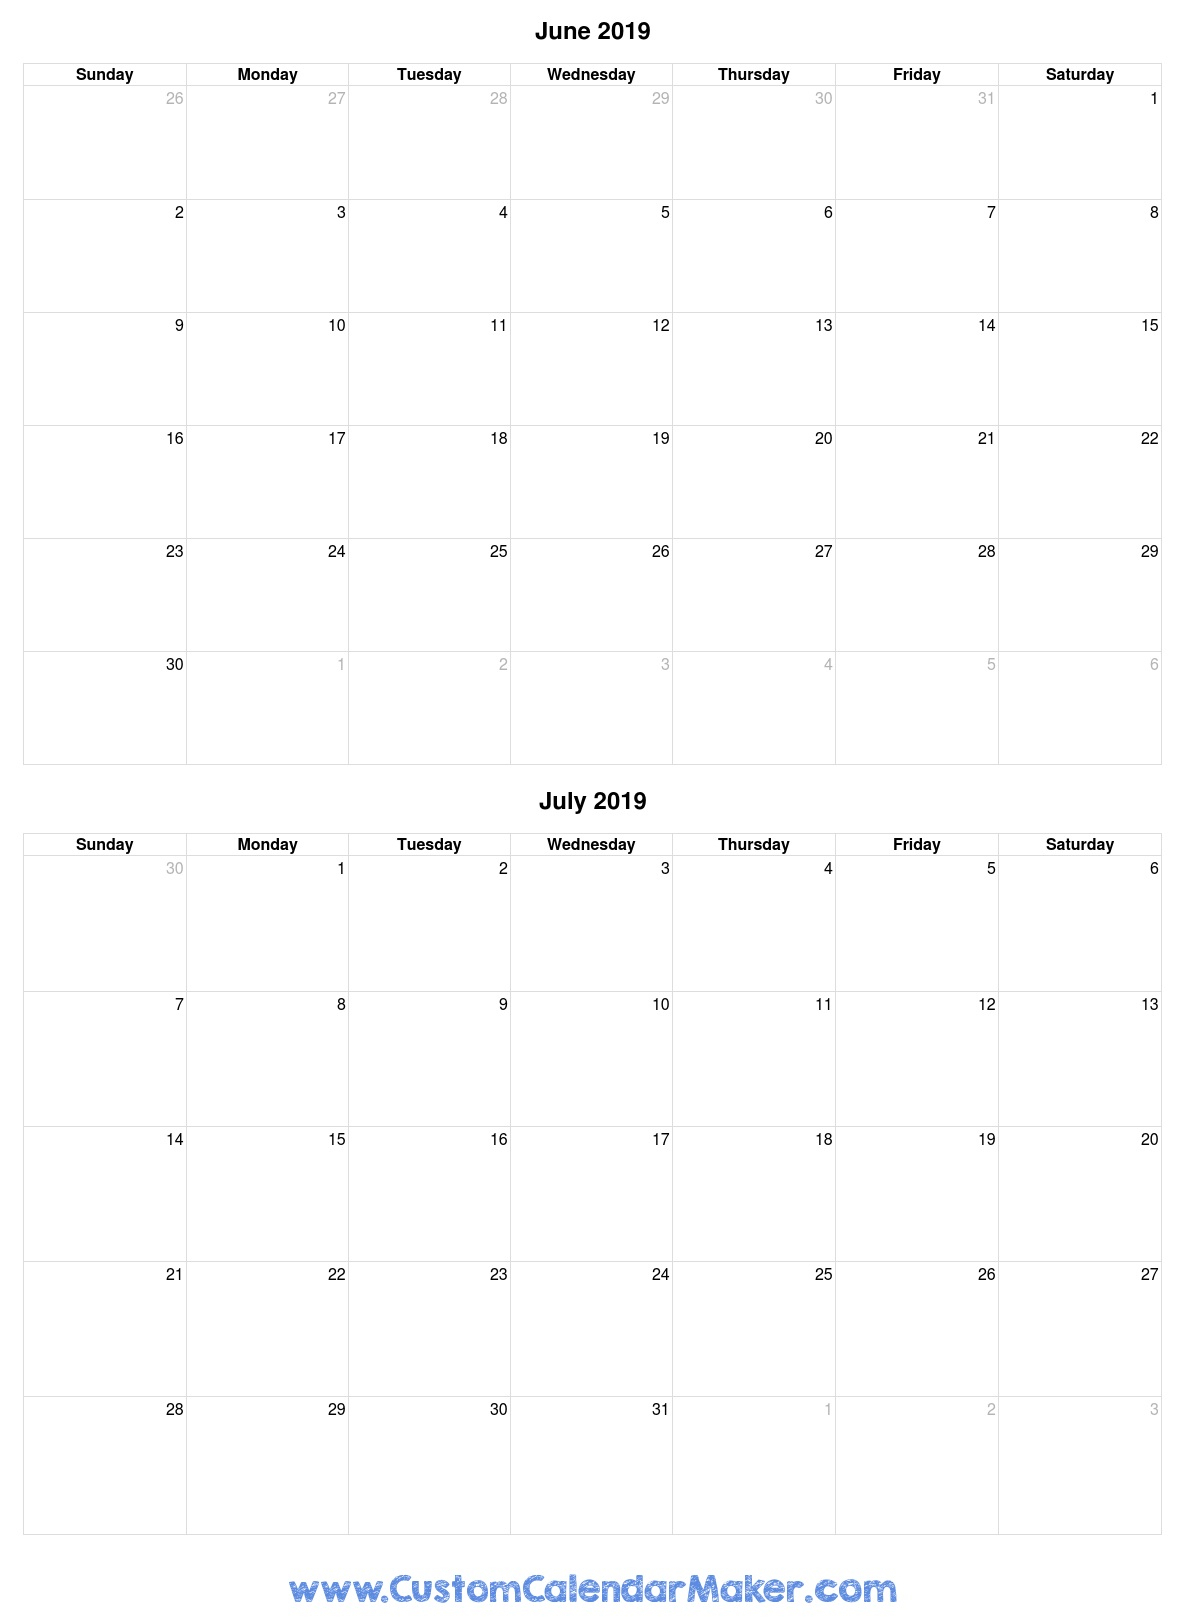 June And July 2019 Free Printable Calendar Template throughout June And July Blank Calendar